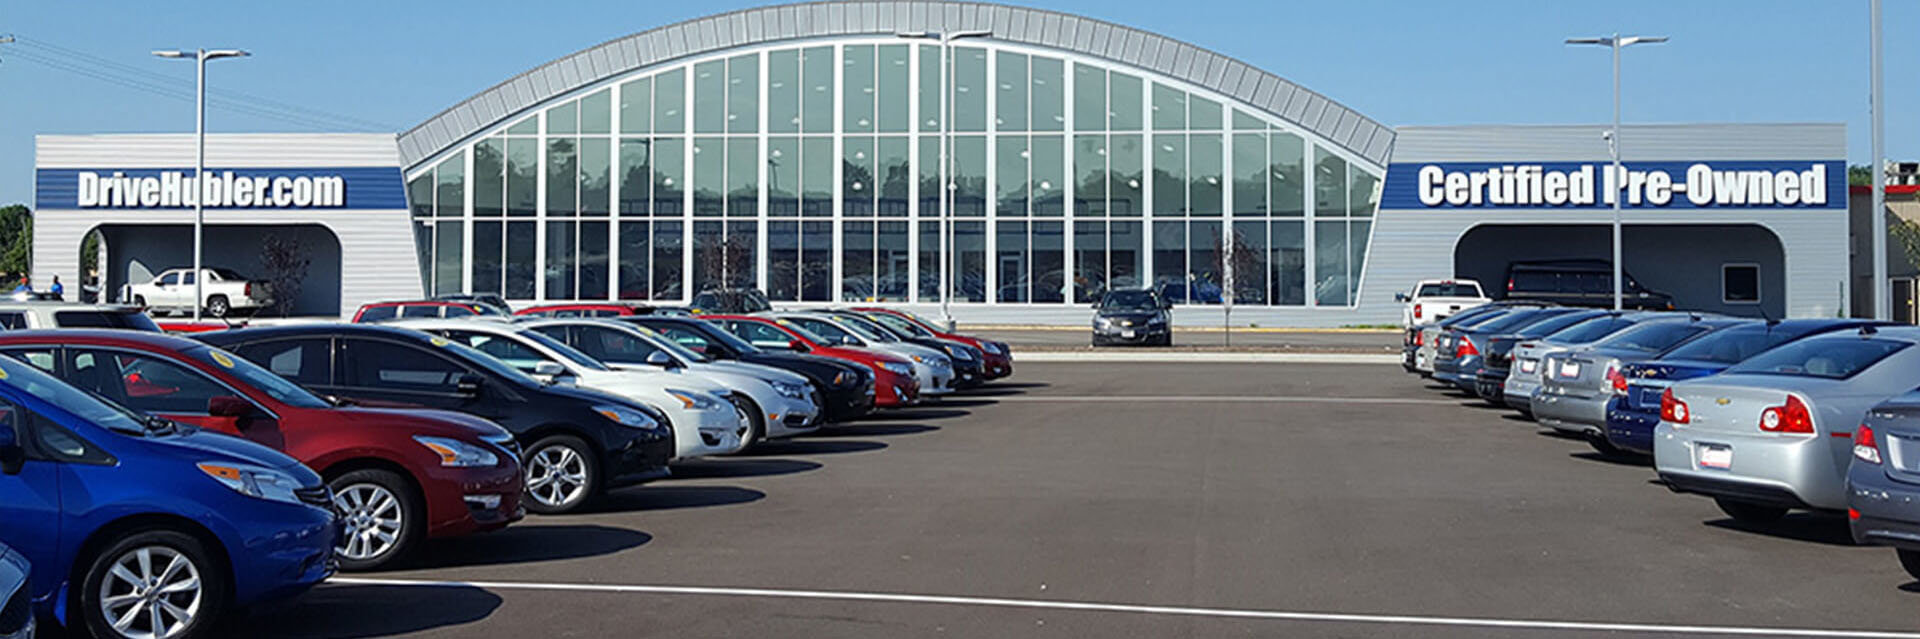 Your exceptional car buying experience starts right here